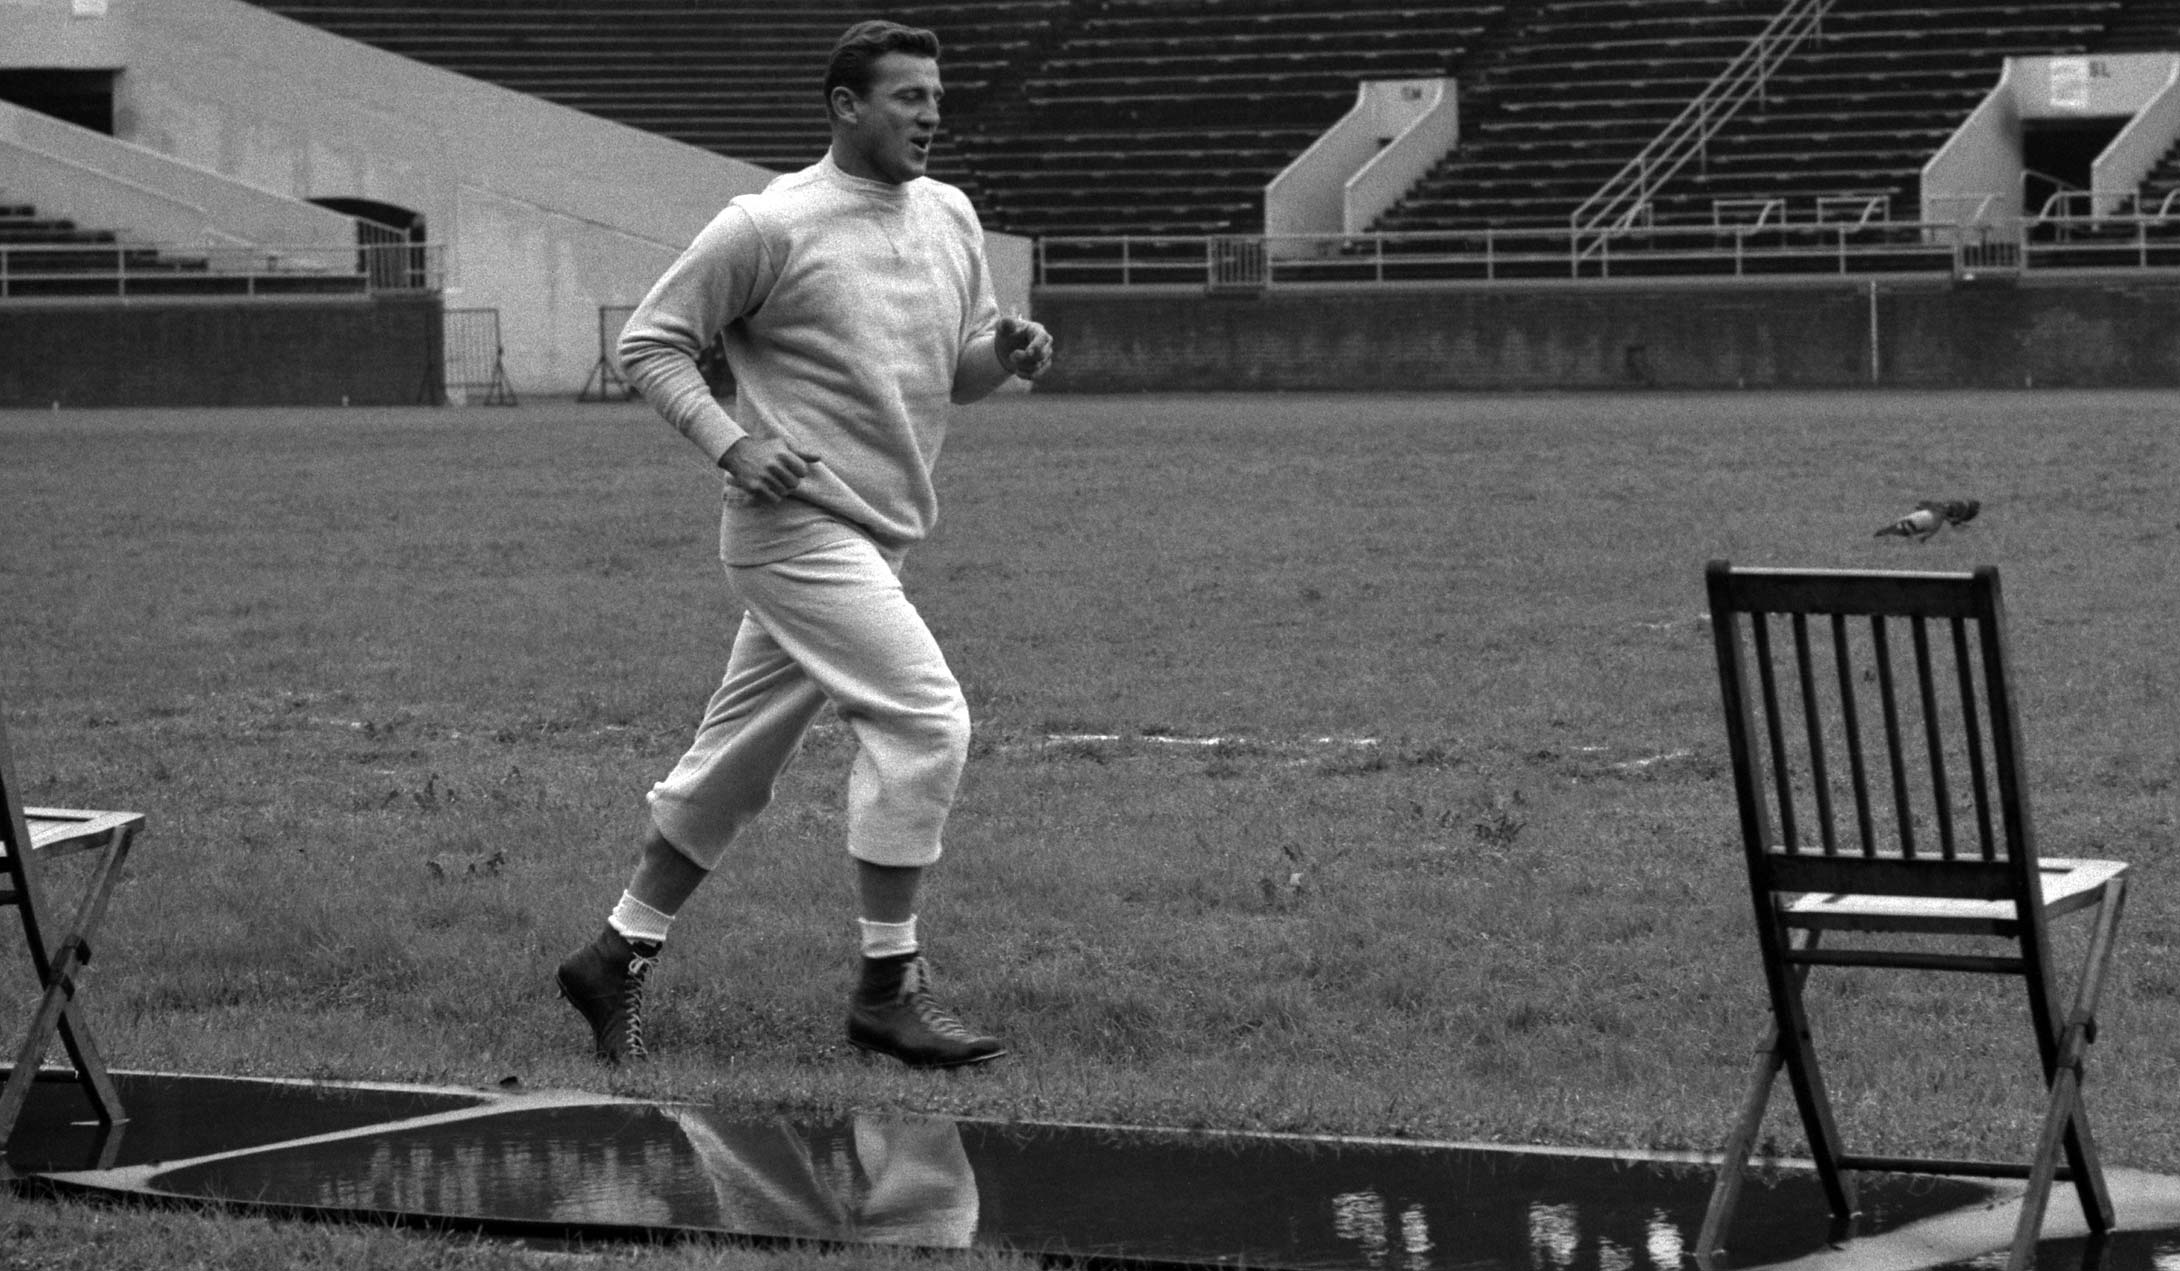 Bednarik jogs around the field prior to a practice in 1960 at Franklin Field in Philadelphia.